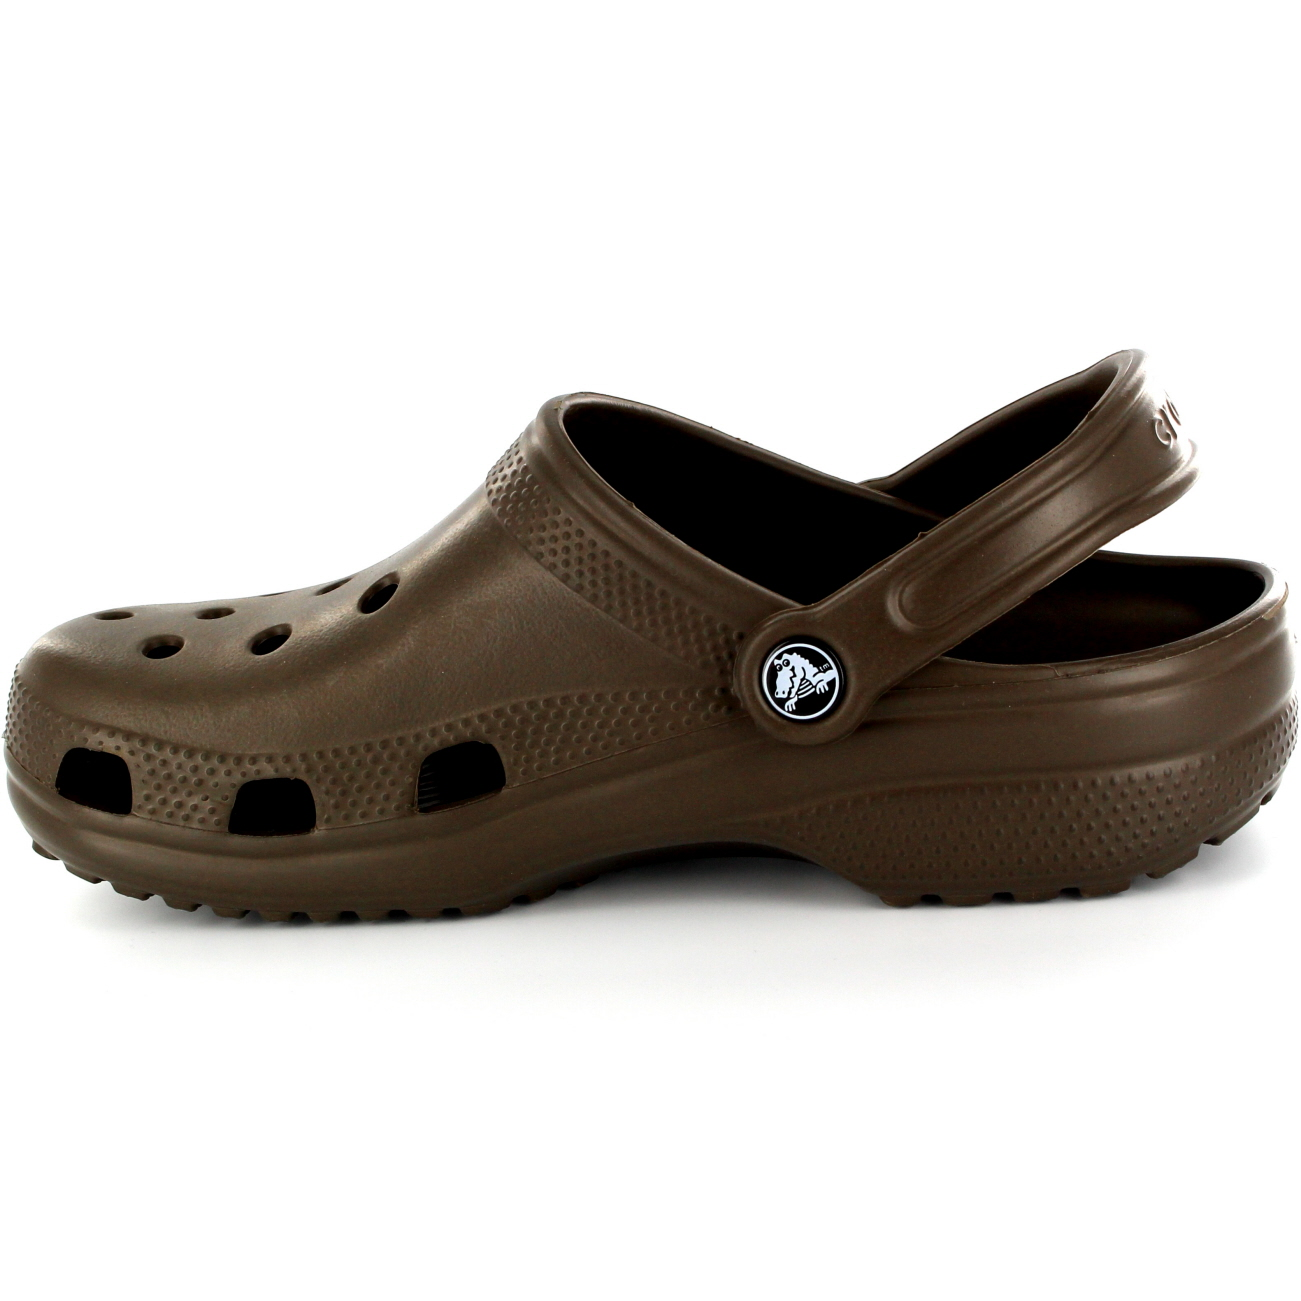 Crocs Sandals and Beach Shoes for Men. Crocs are a truly distinctive and iconic footwear brand that have created remarkable casual shoes through innovative moulding technology. Crocs are best known for being incredibly lightweight and colourful, with Crocs being available in many fun and vibrant colours as well as more subtle choices.